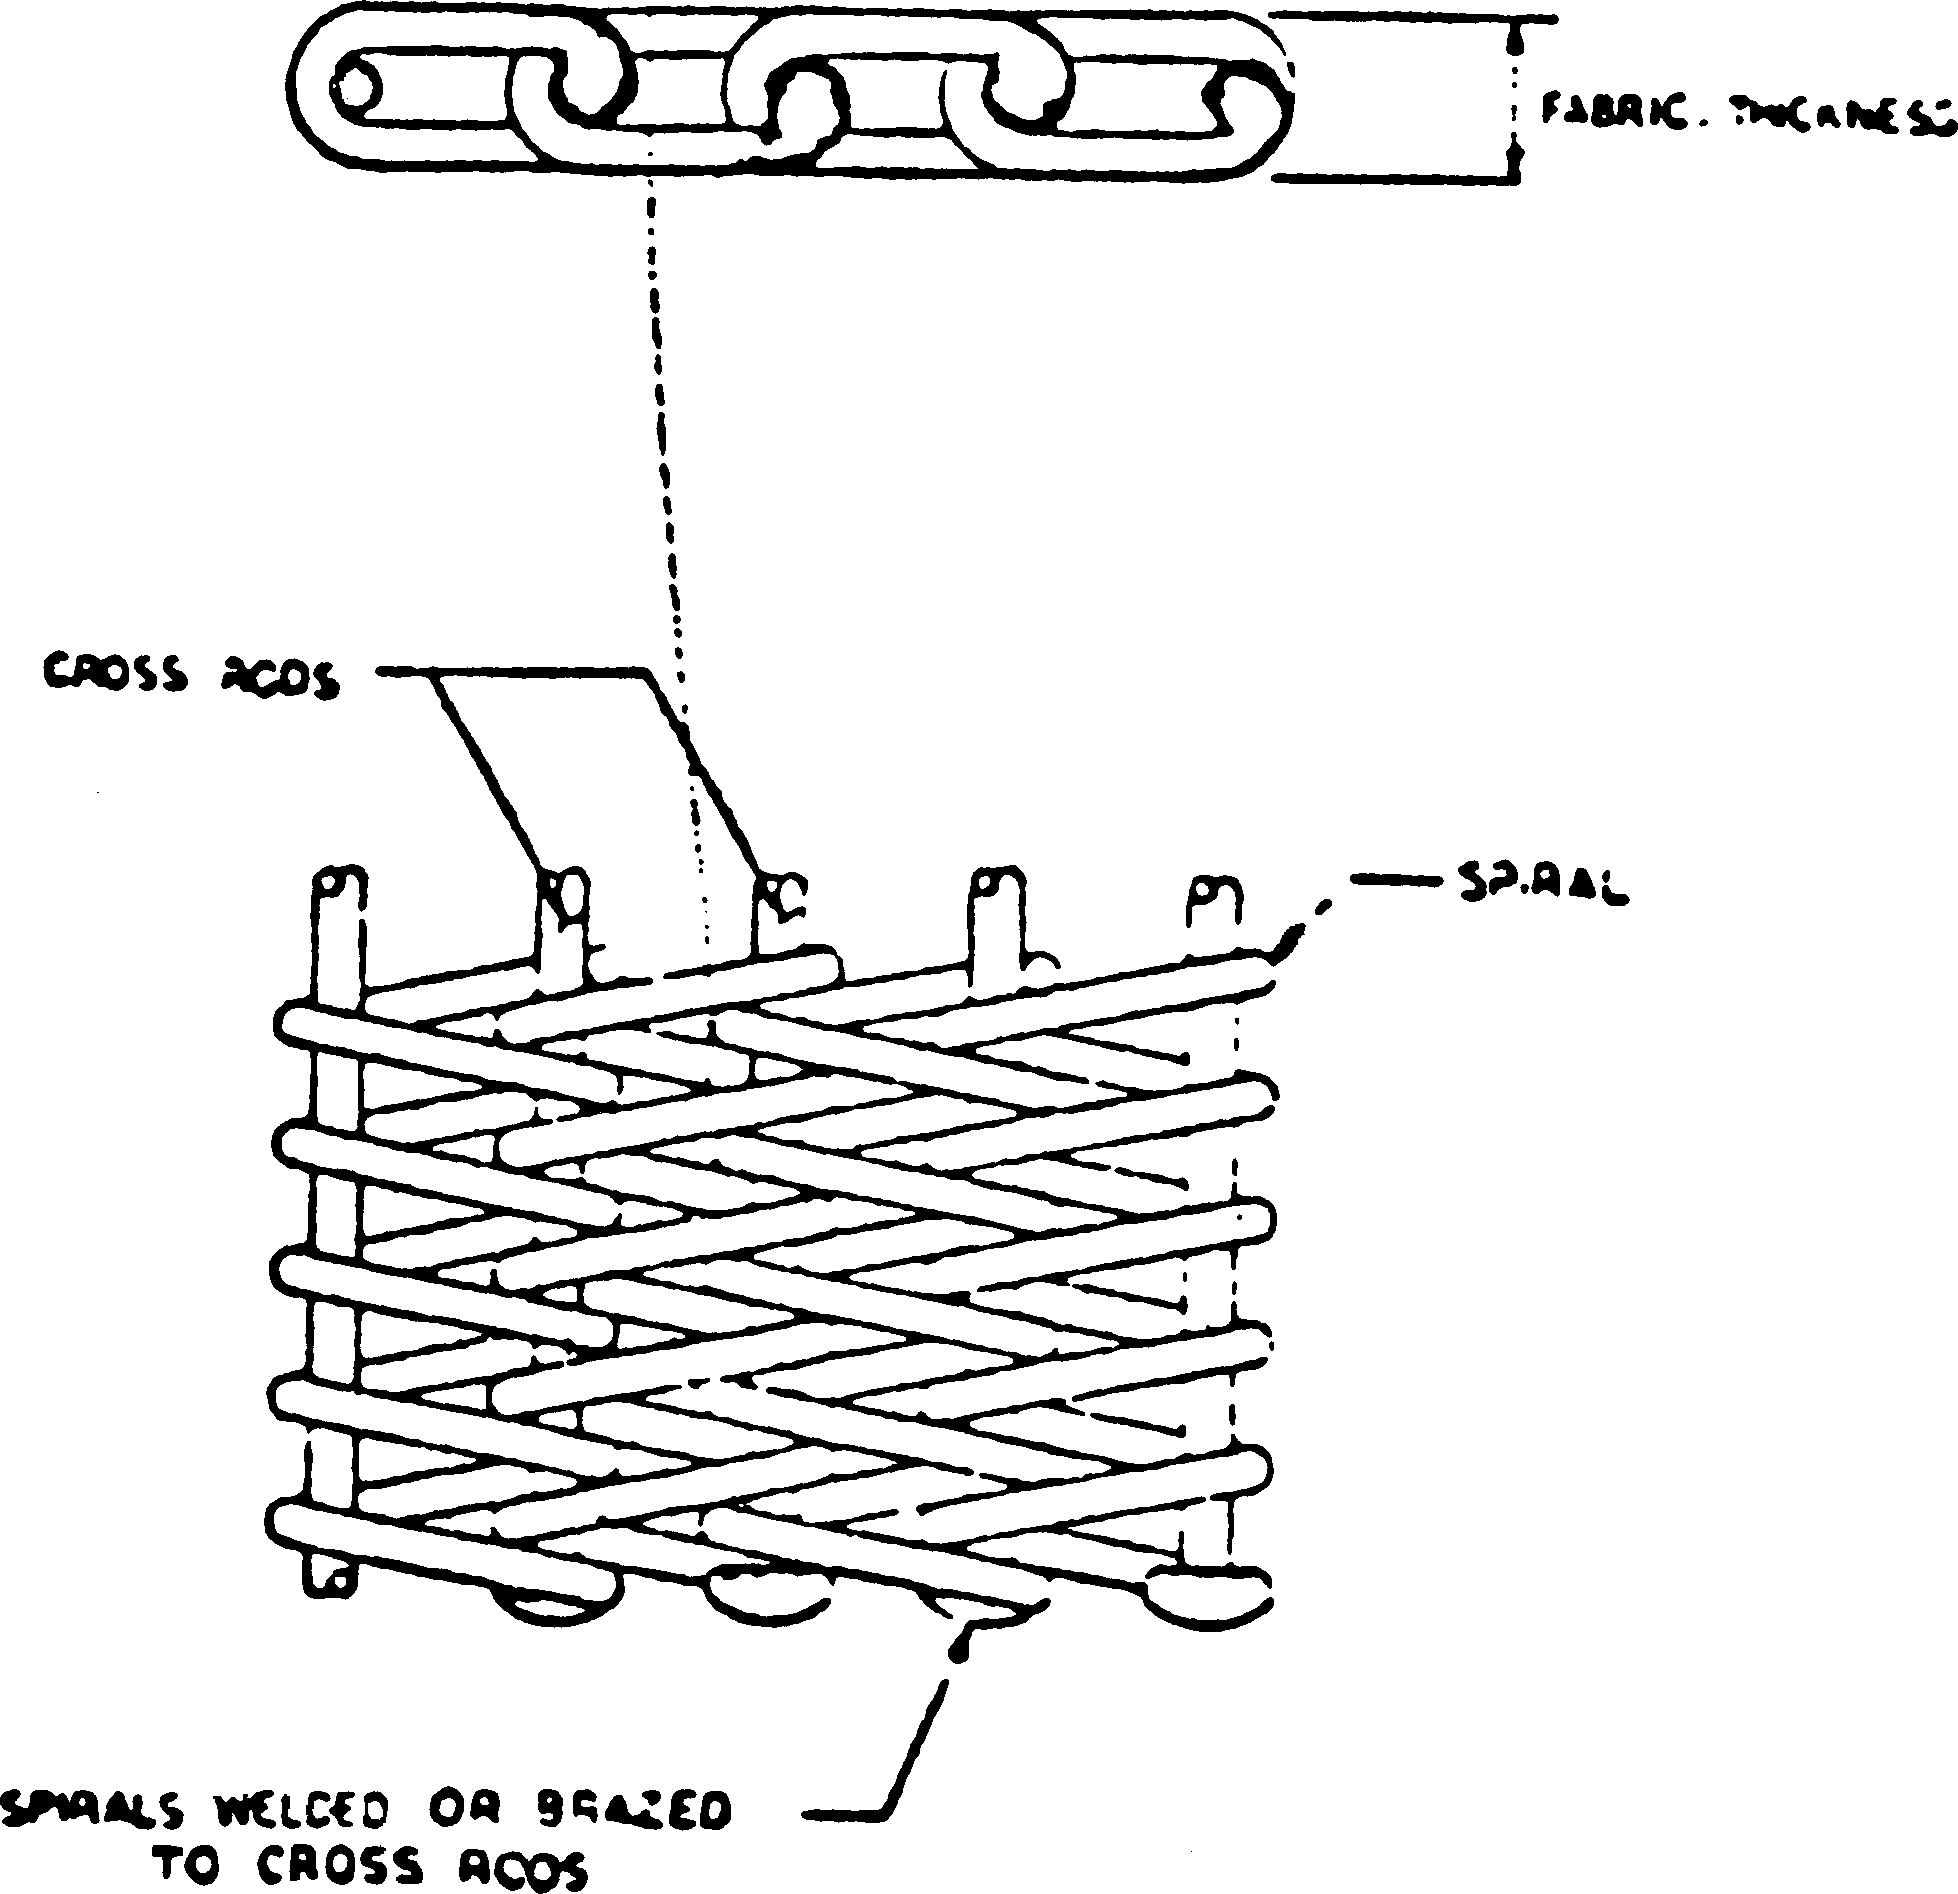 15 18 118 100Amp Electrical Service Diagram Residential 2013060632cc8d1721144aa48067ab70c98f16b4